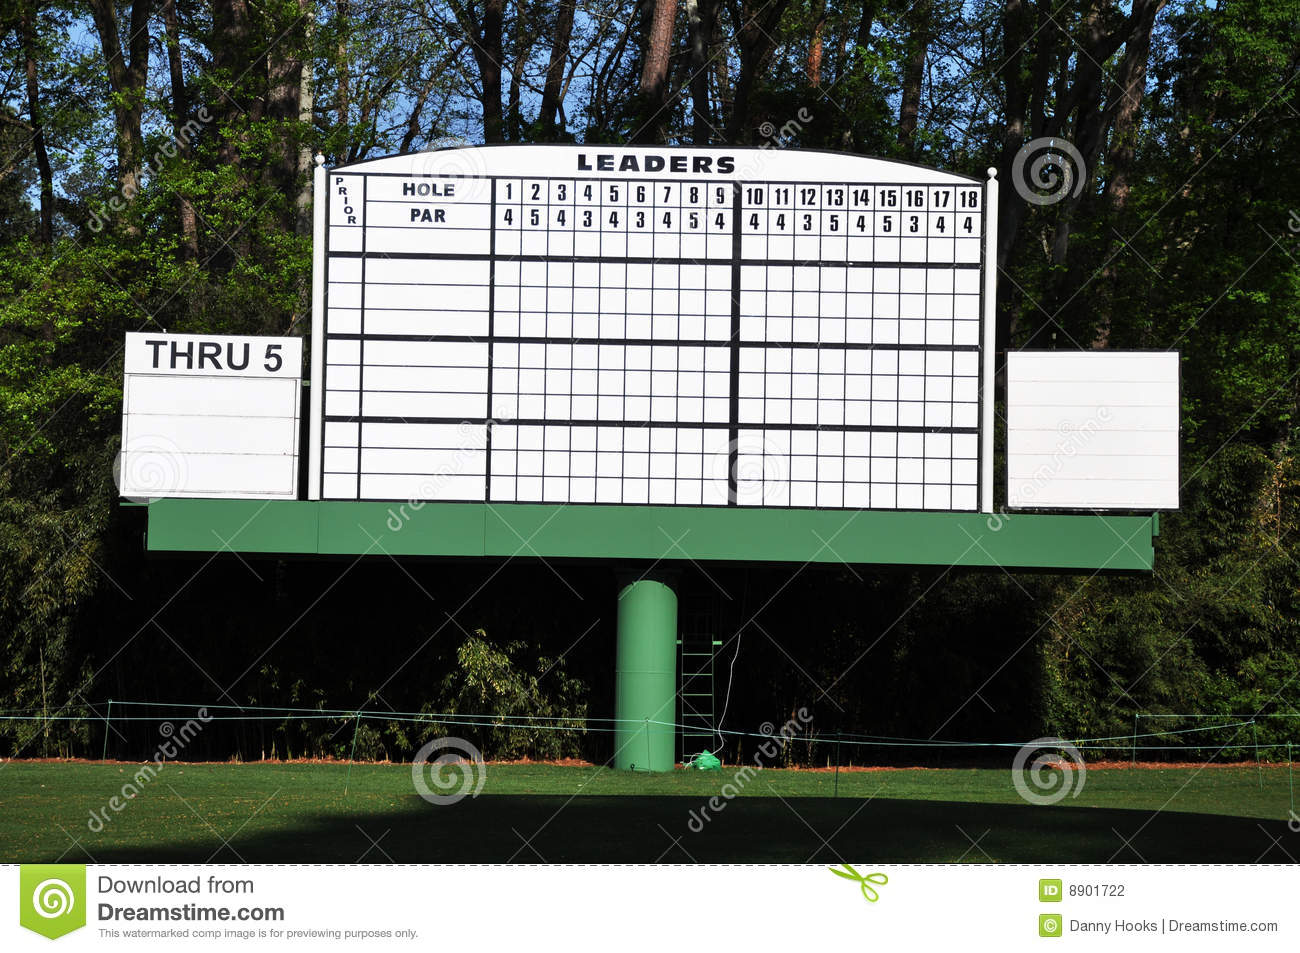 Blank Leader Board At Masters Editorial Photography - Image: 8901722